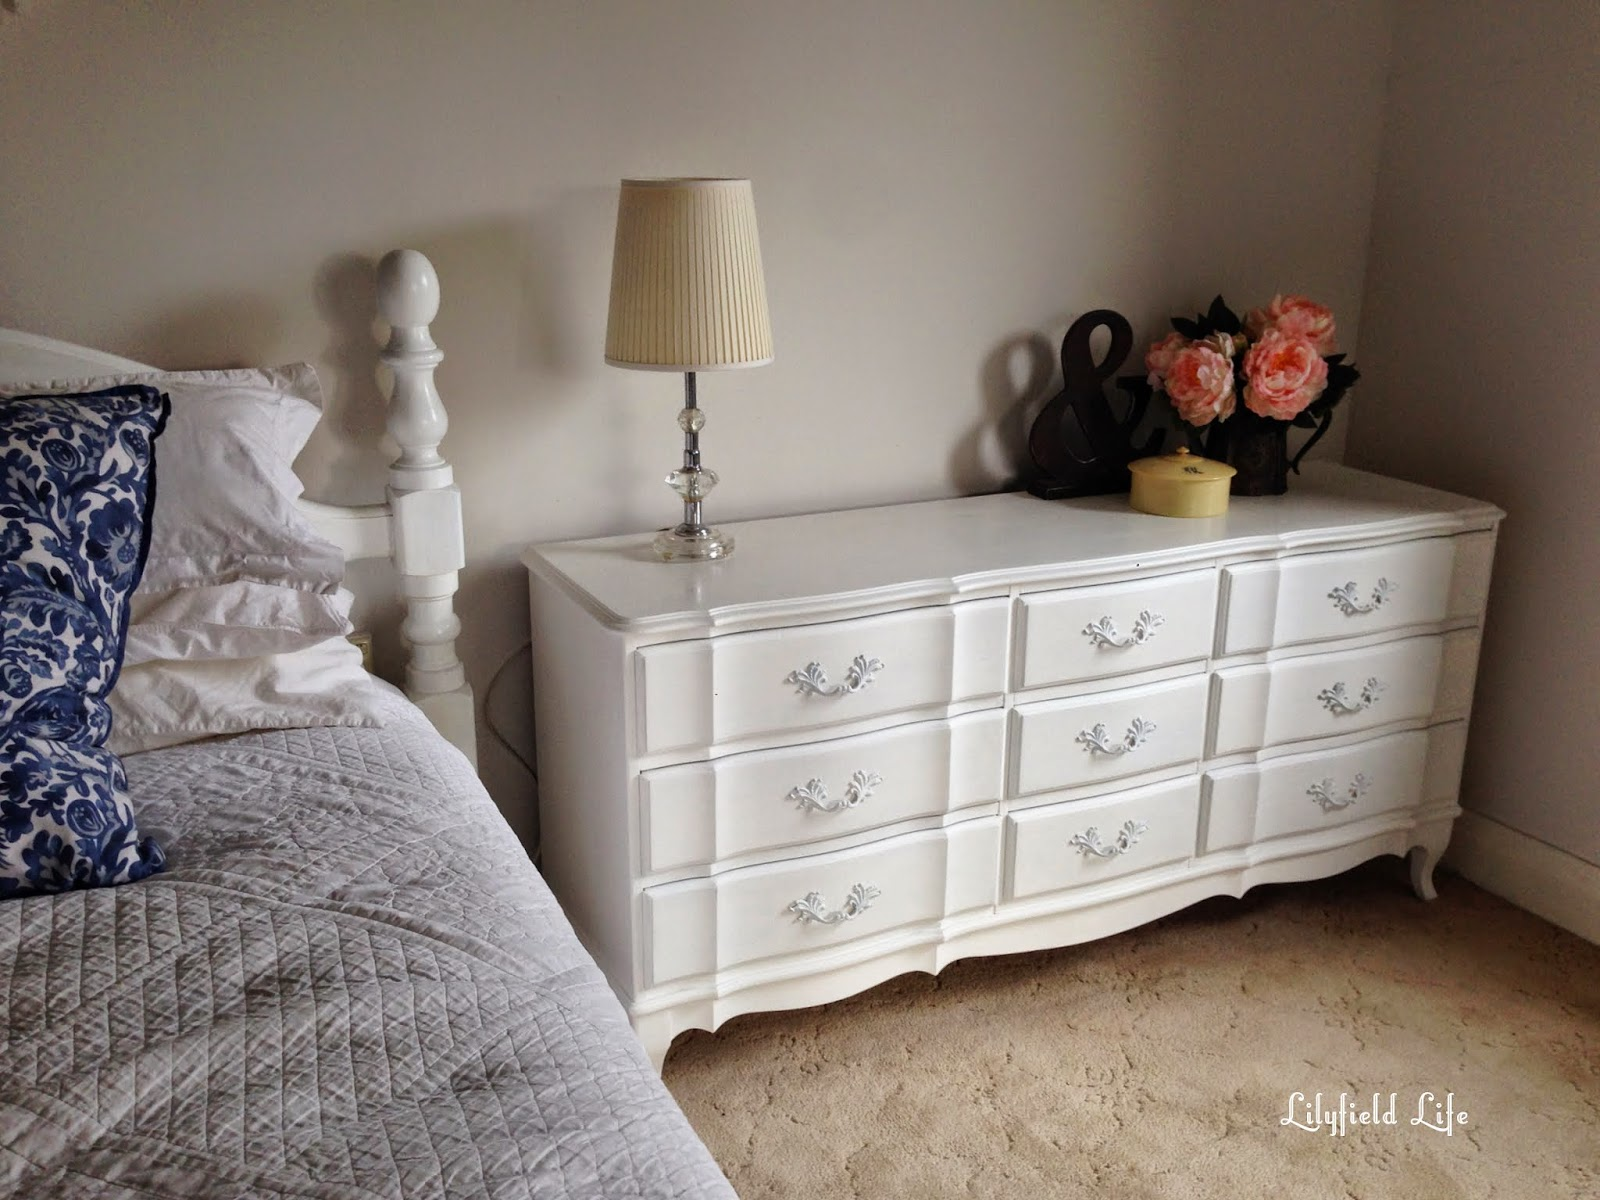 Lilyfield Life white painted french drawers